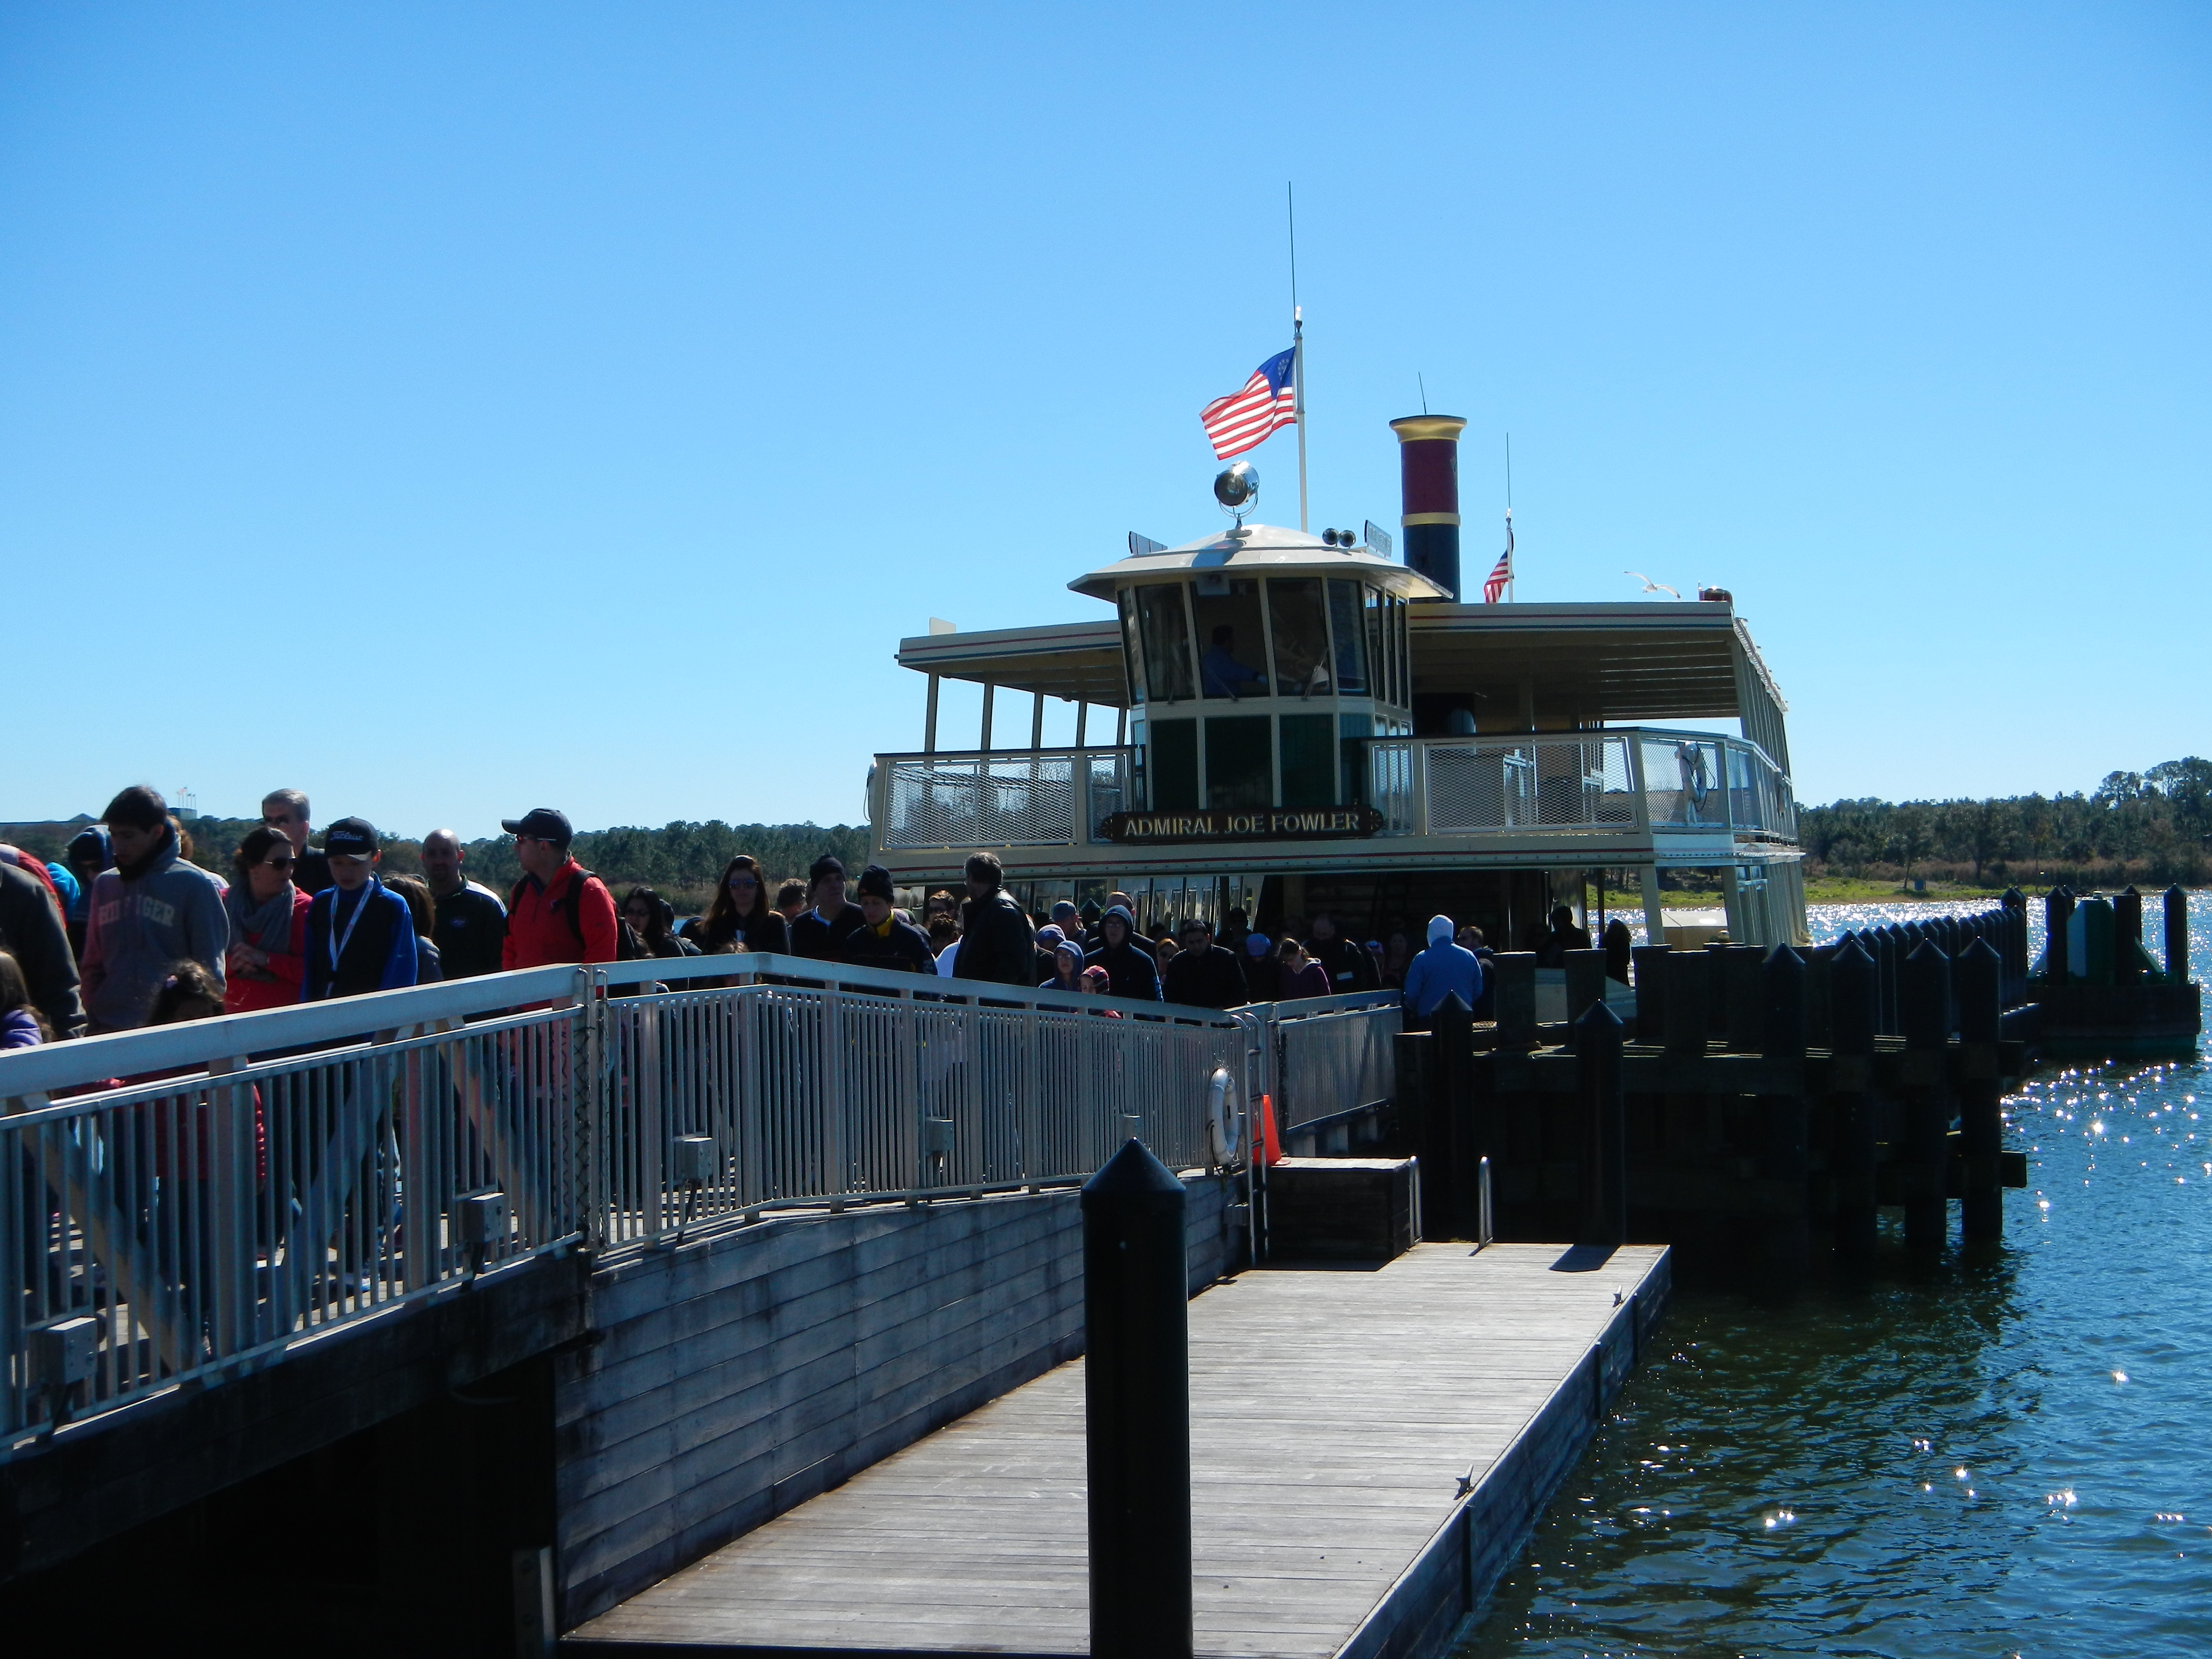 Ferry from Magic Kingdom to Disney Transportation Center